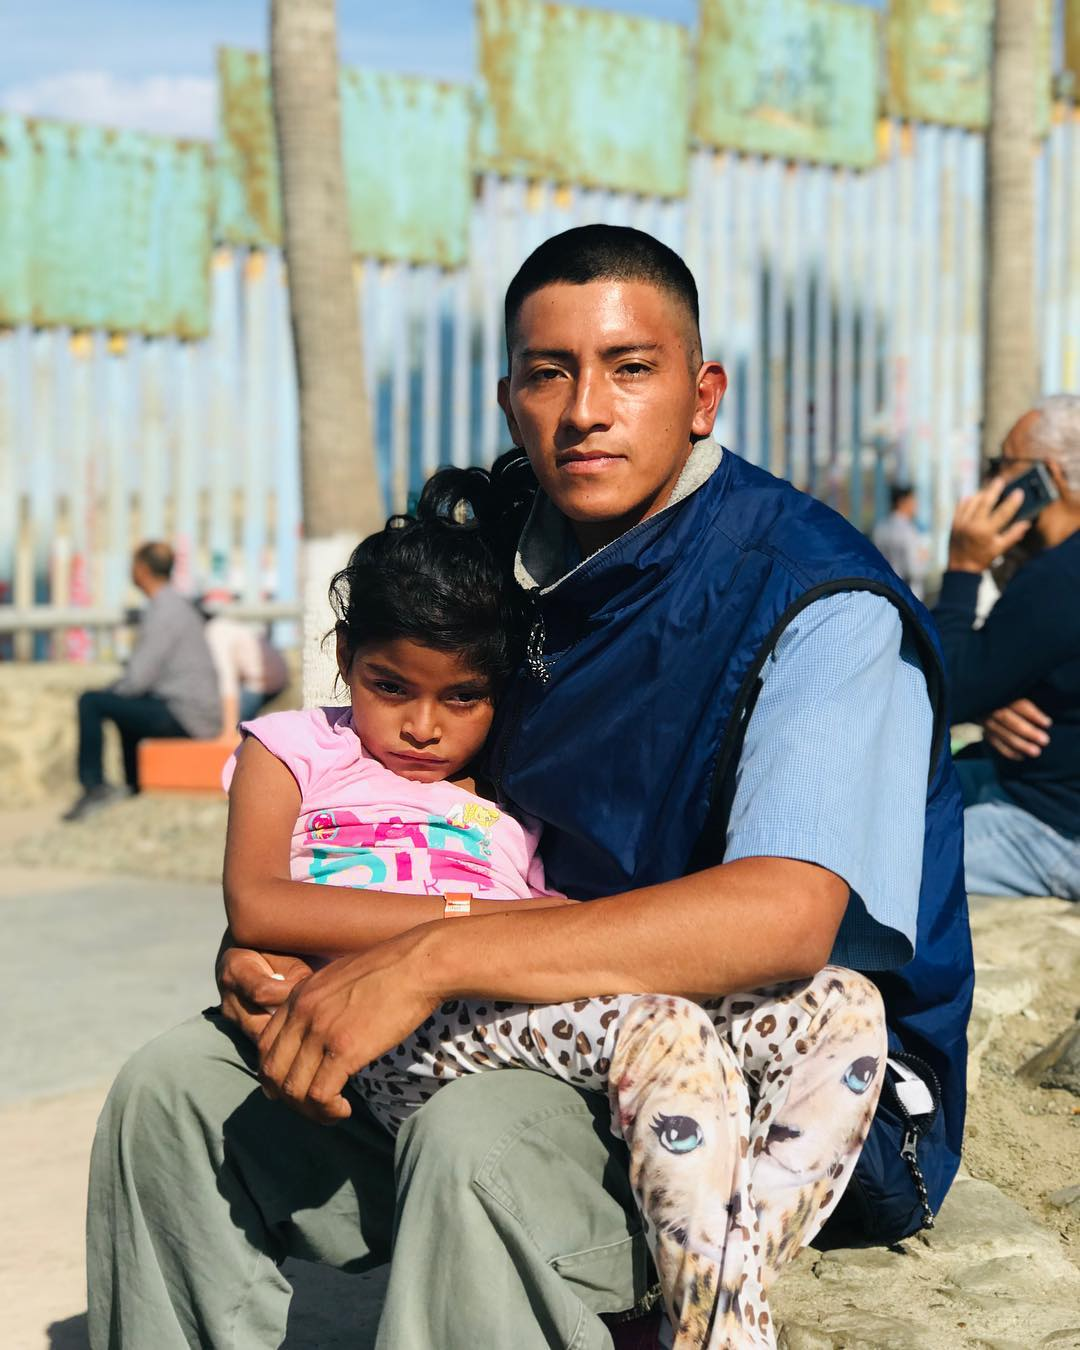 Migrant Father – A journey on foot to the US for Lesly